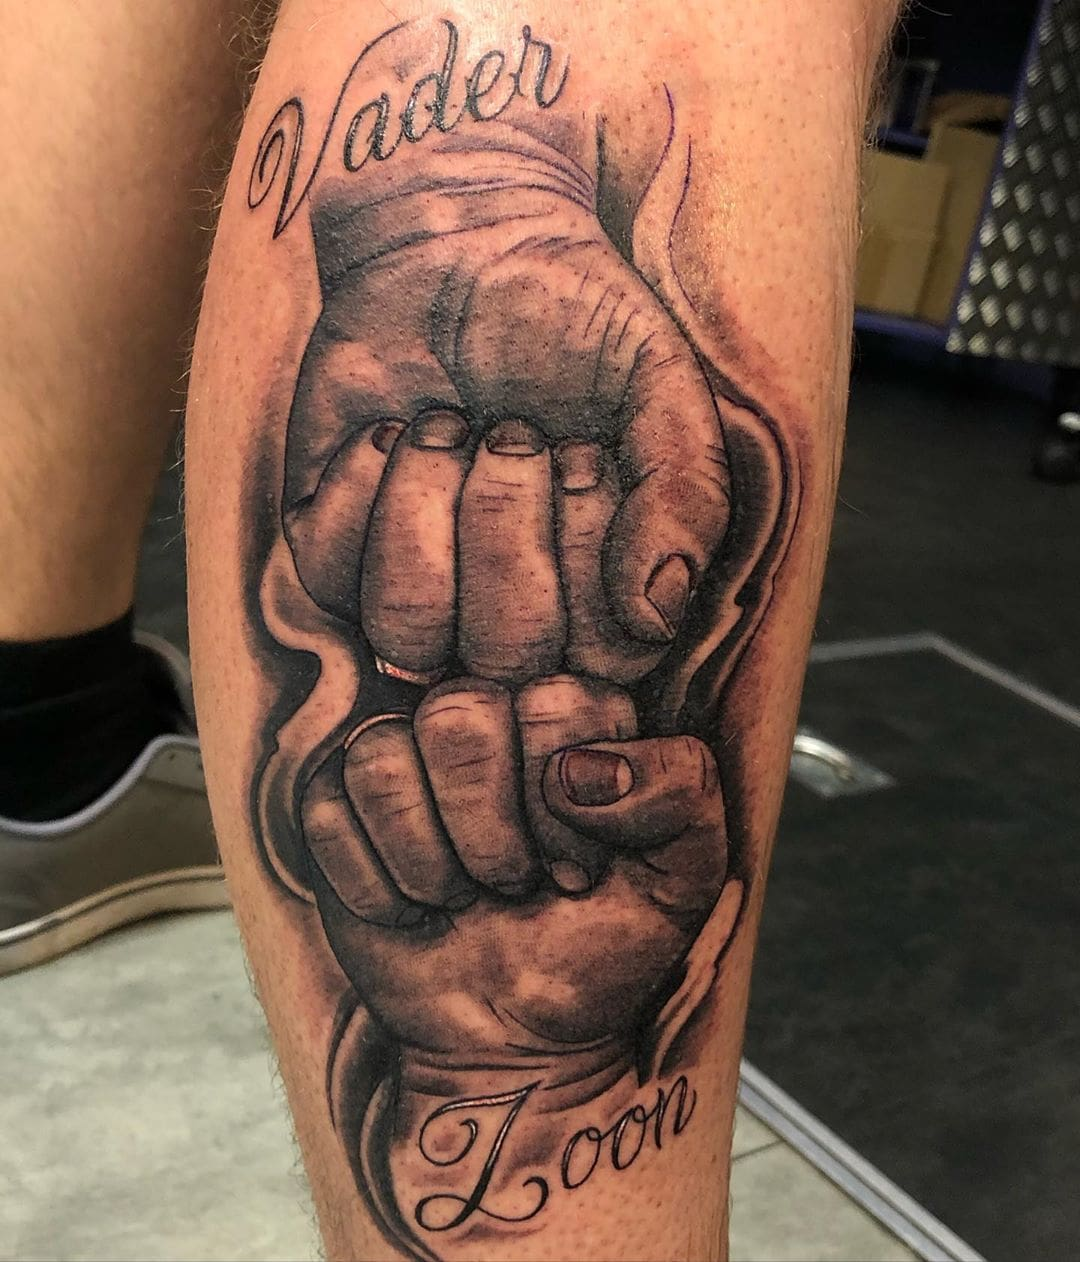 Fist Bump Kids Name Tattoo